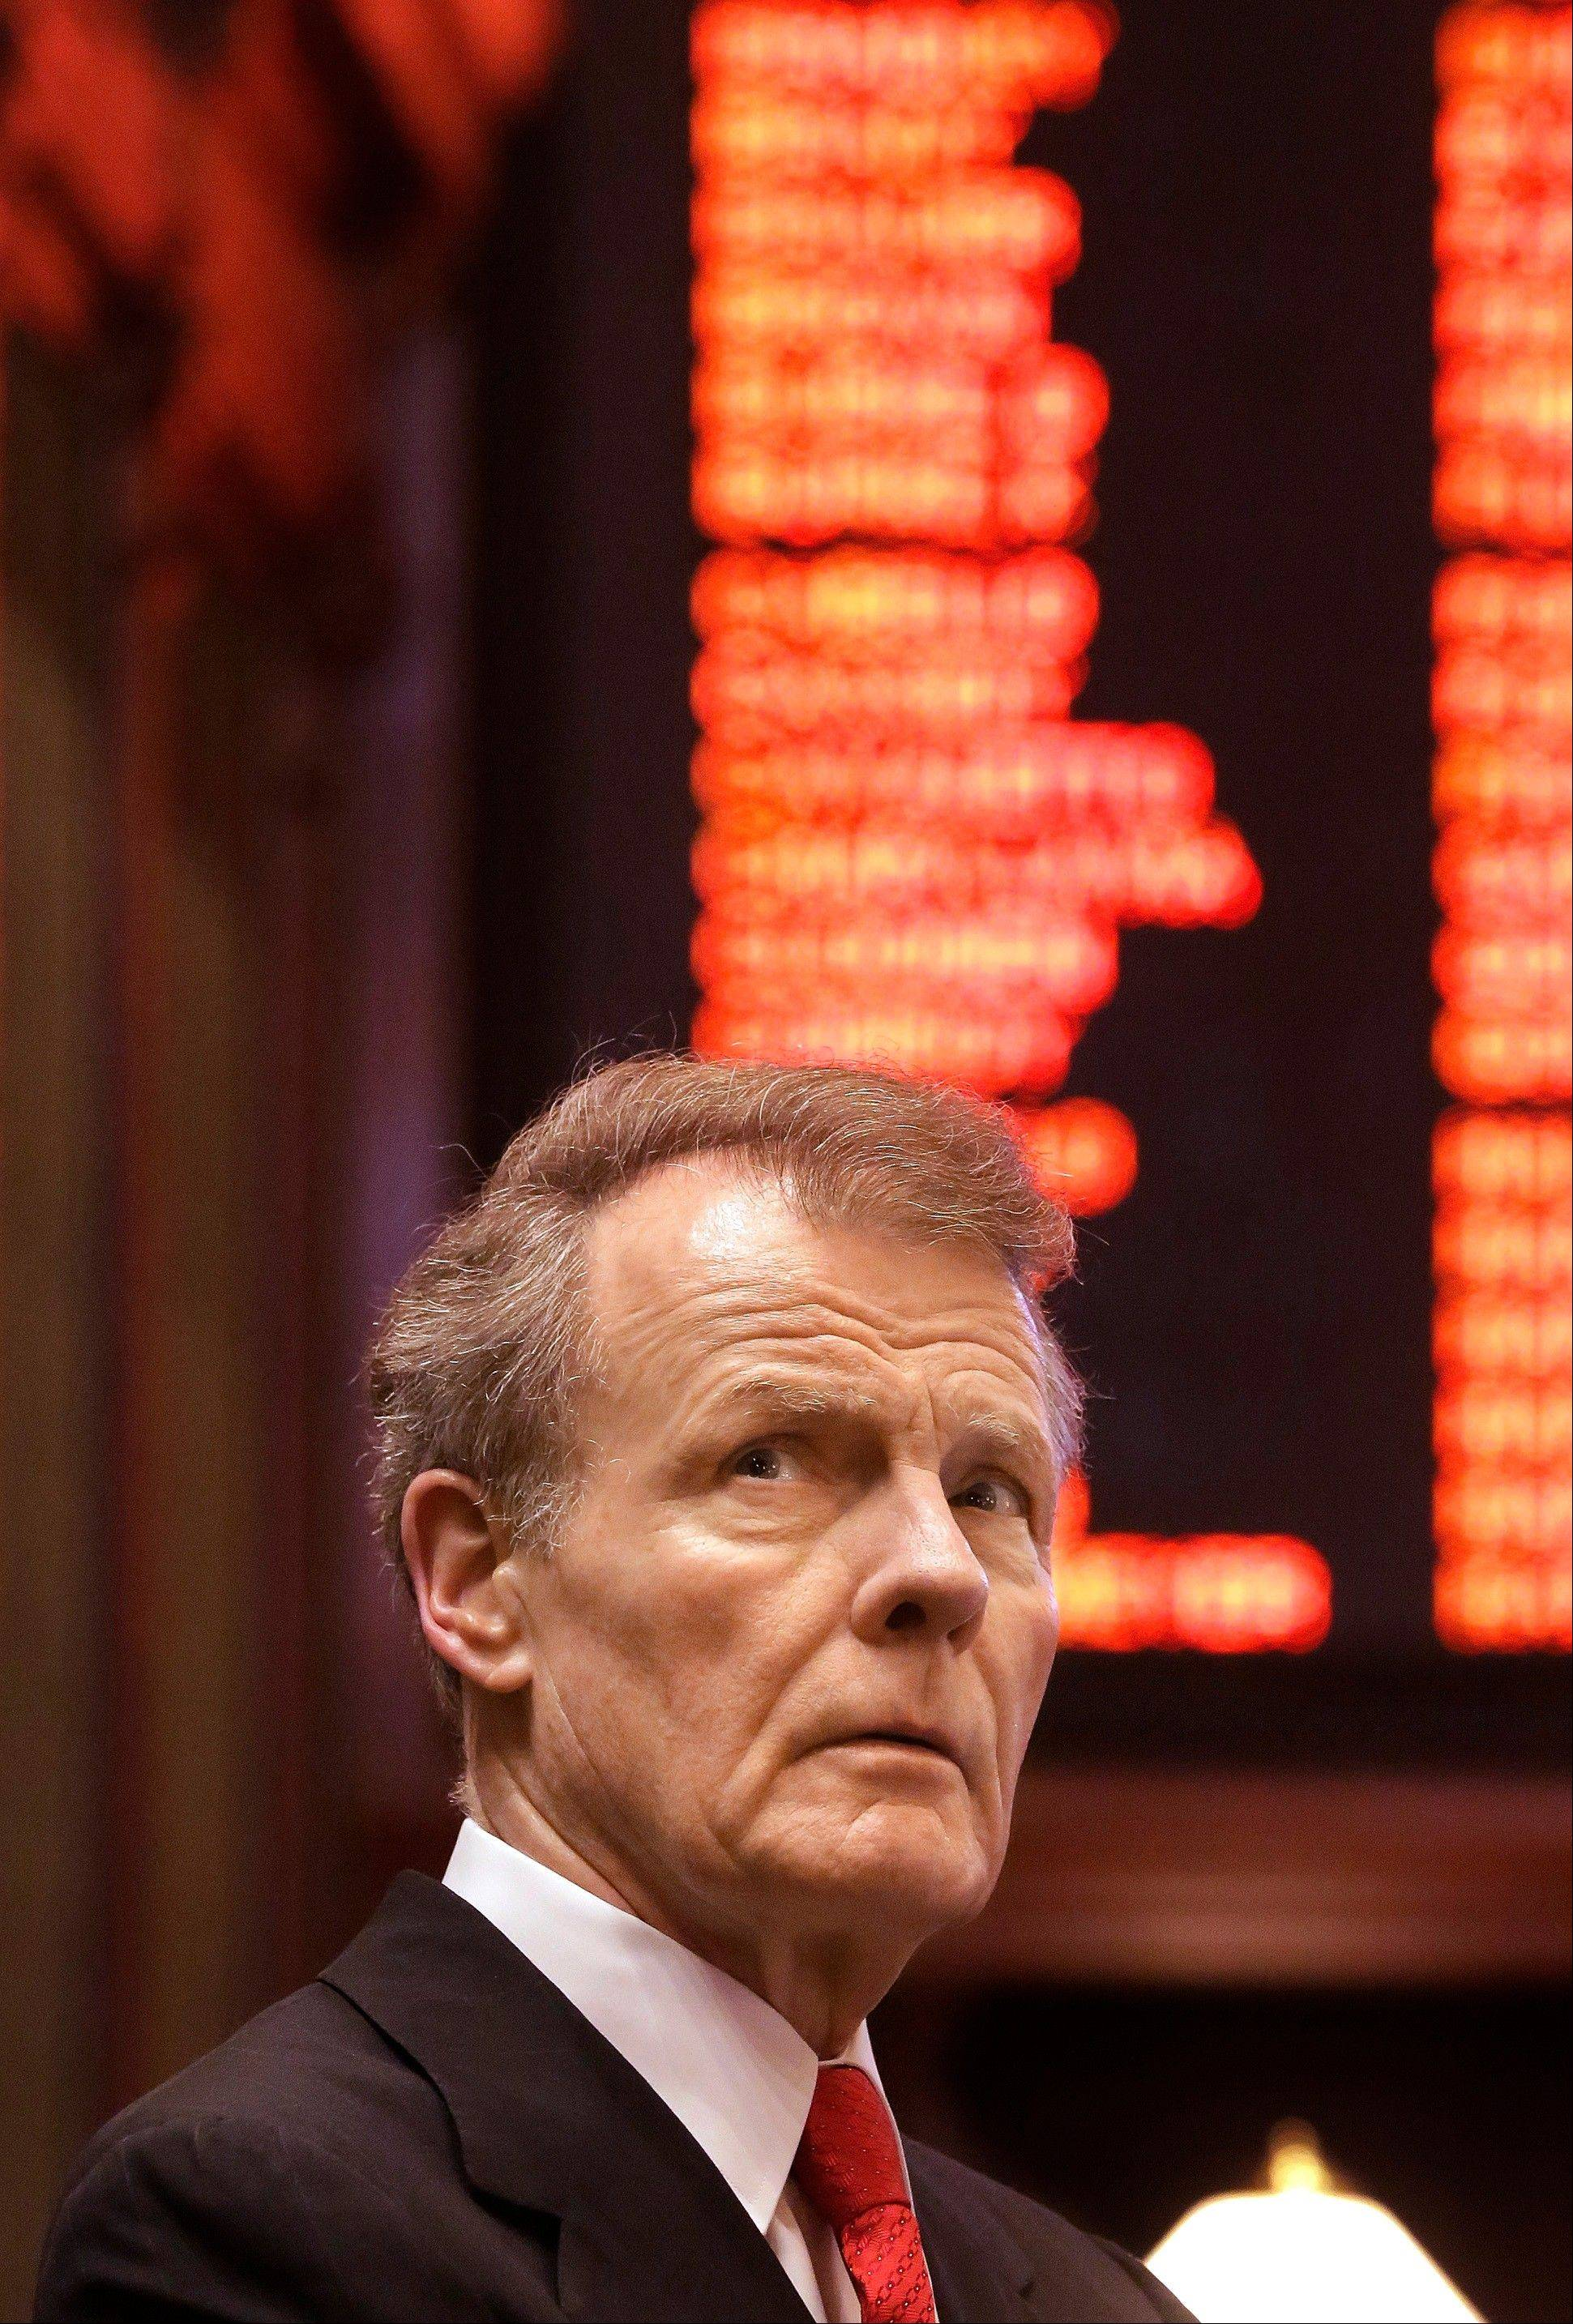 House Speaker Michael Madigan's pension legislation, which Gov. Pat Quinn supports, passed in the House but failed in the Senate this spring.